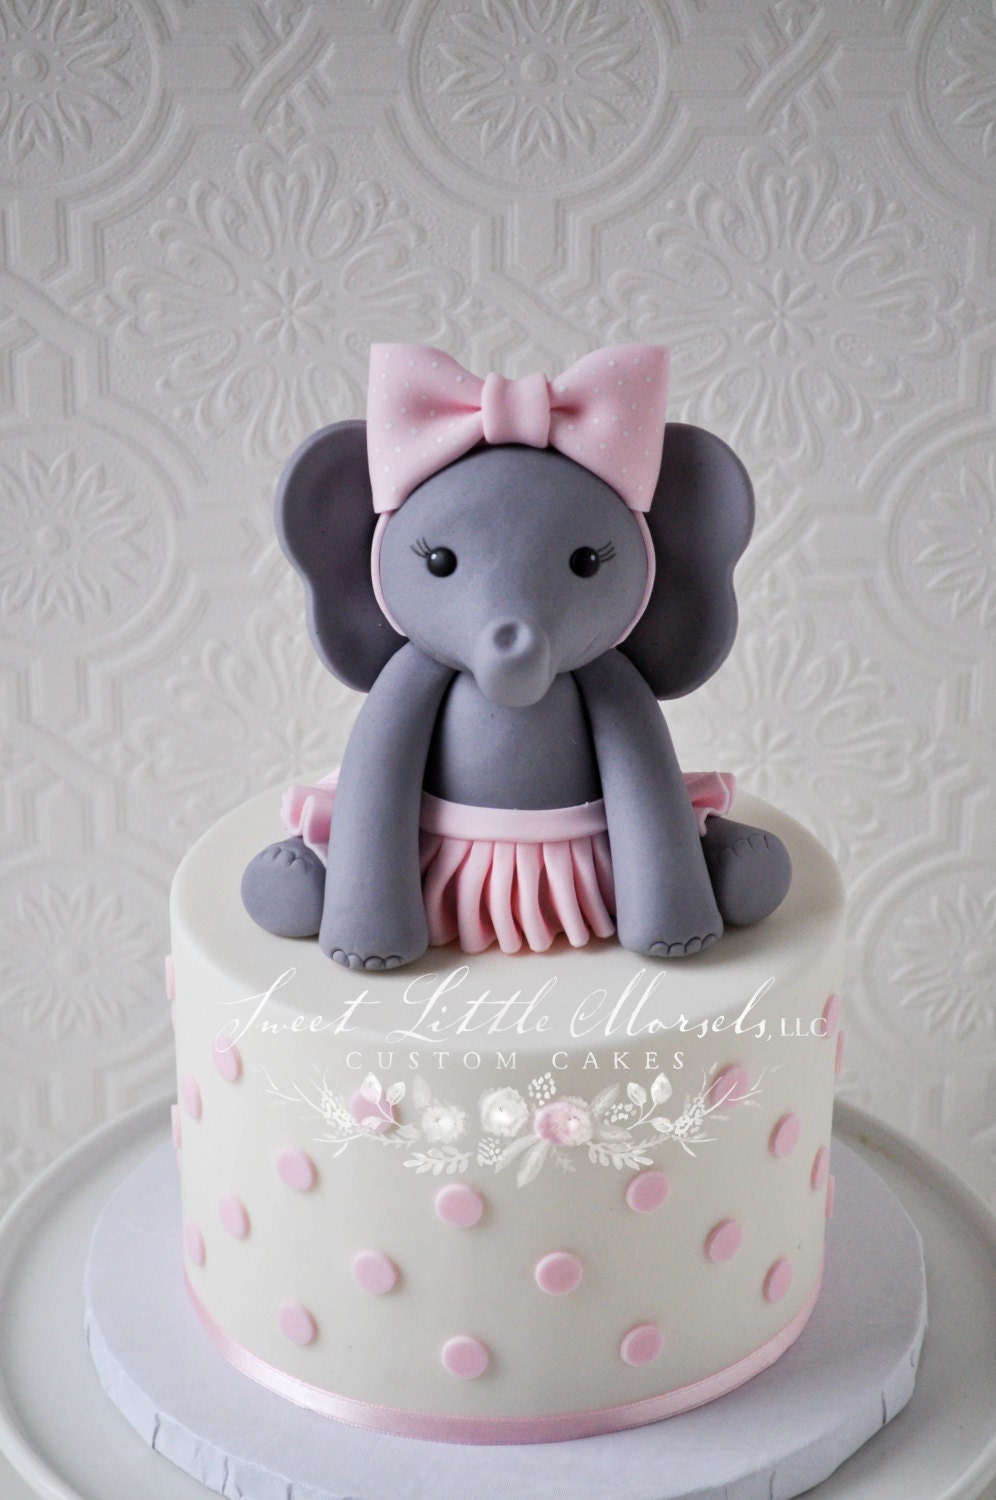 The Original Baby Girl Elephant Cake Topper by ...